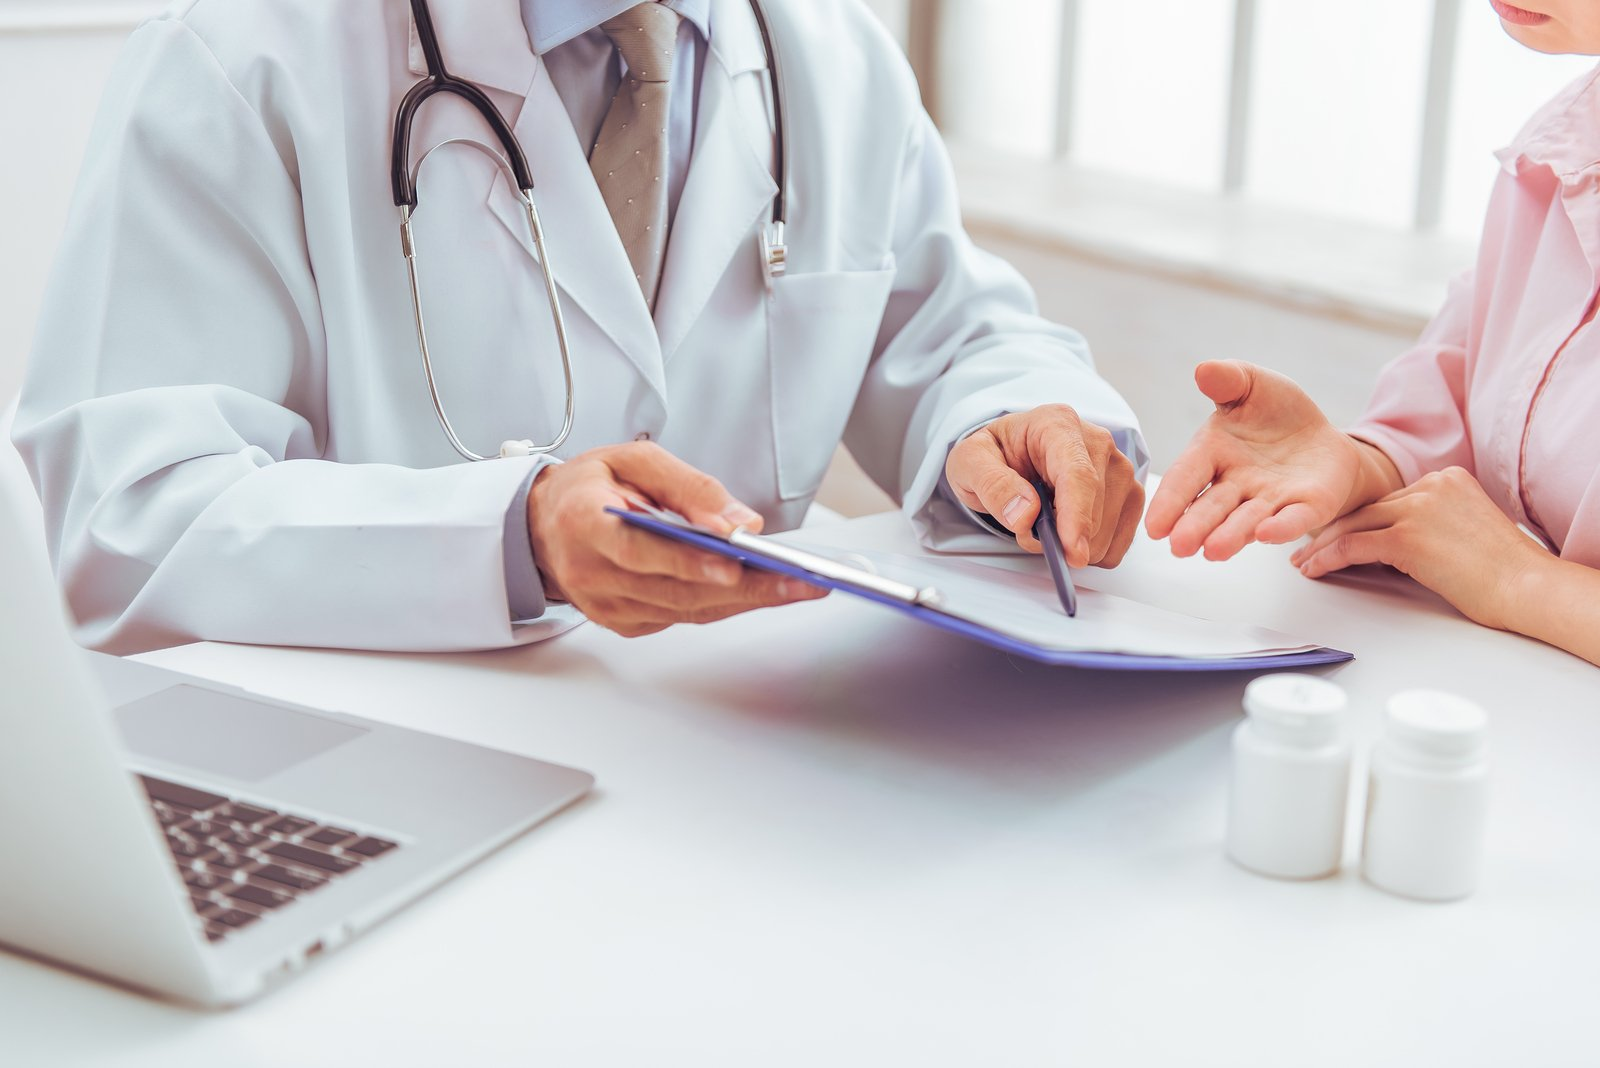 How To Make a Medical Negligence Claim - Sue the NHS